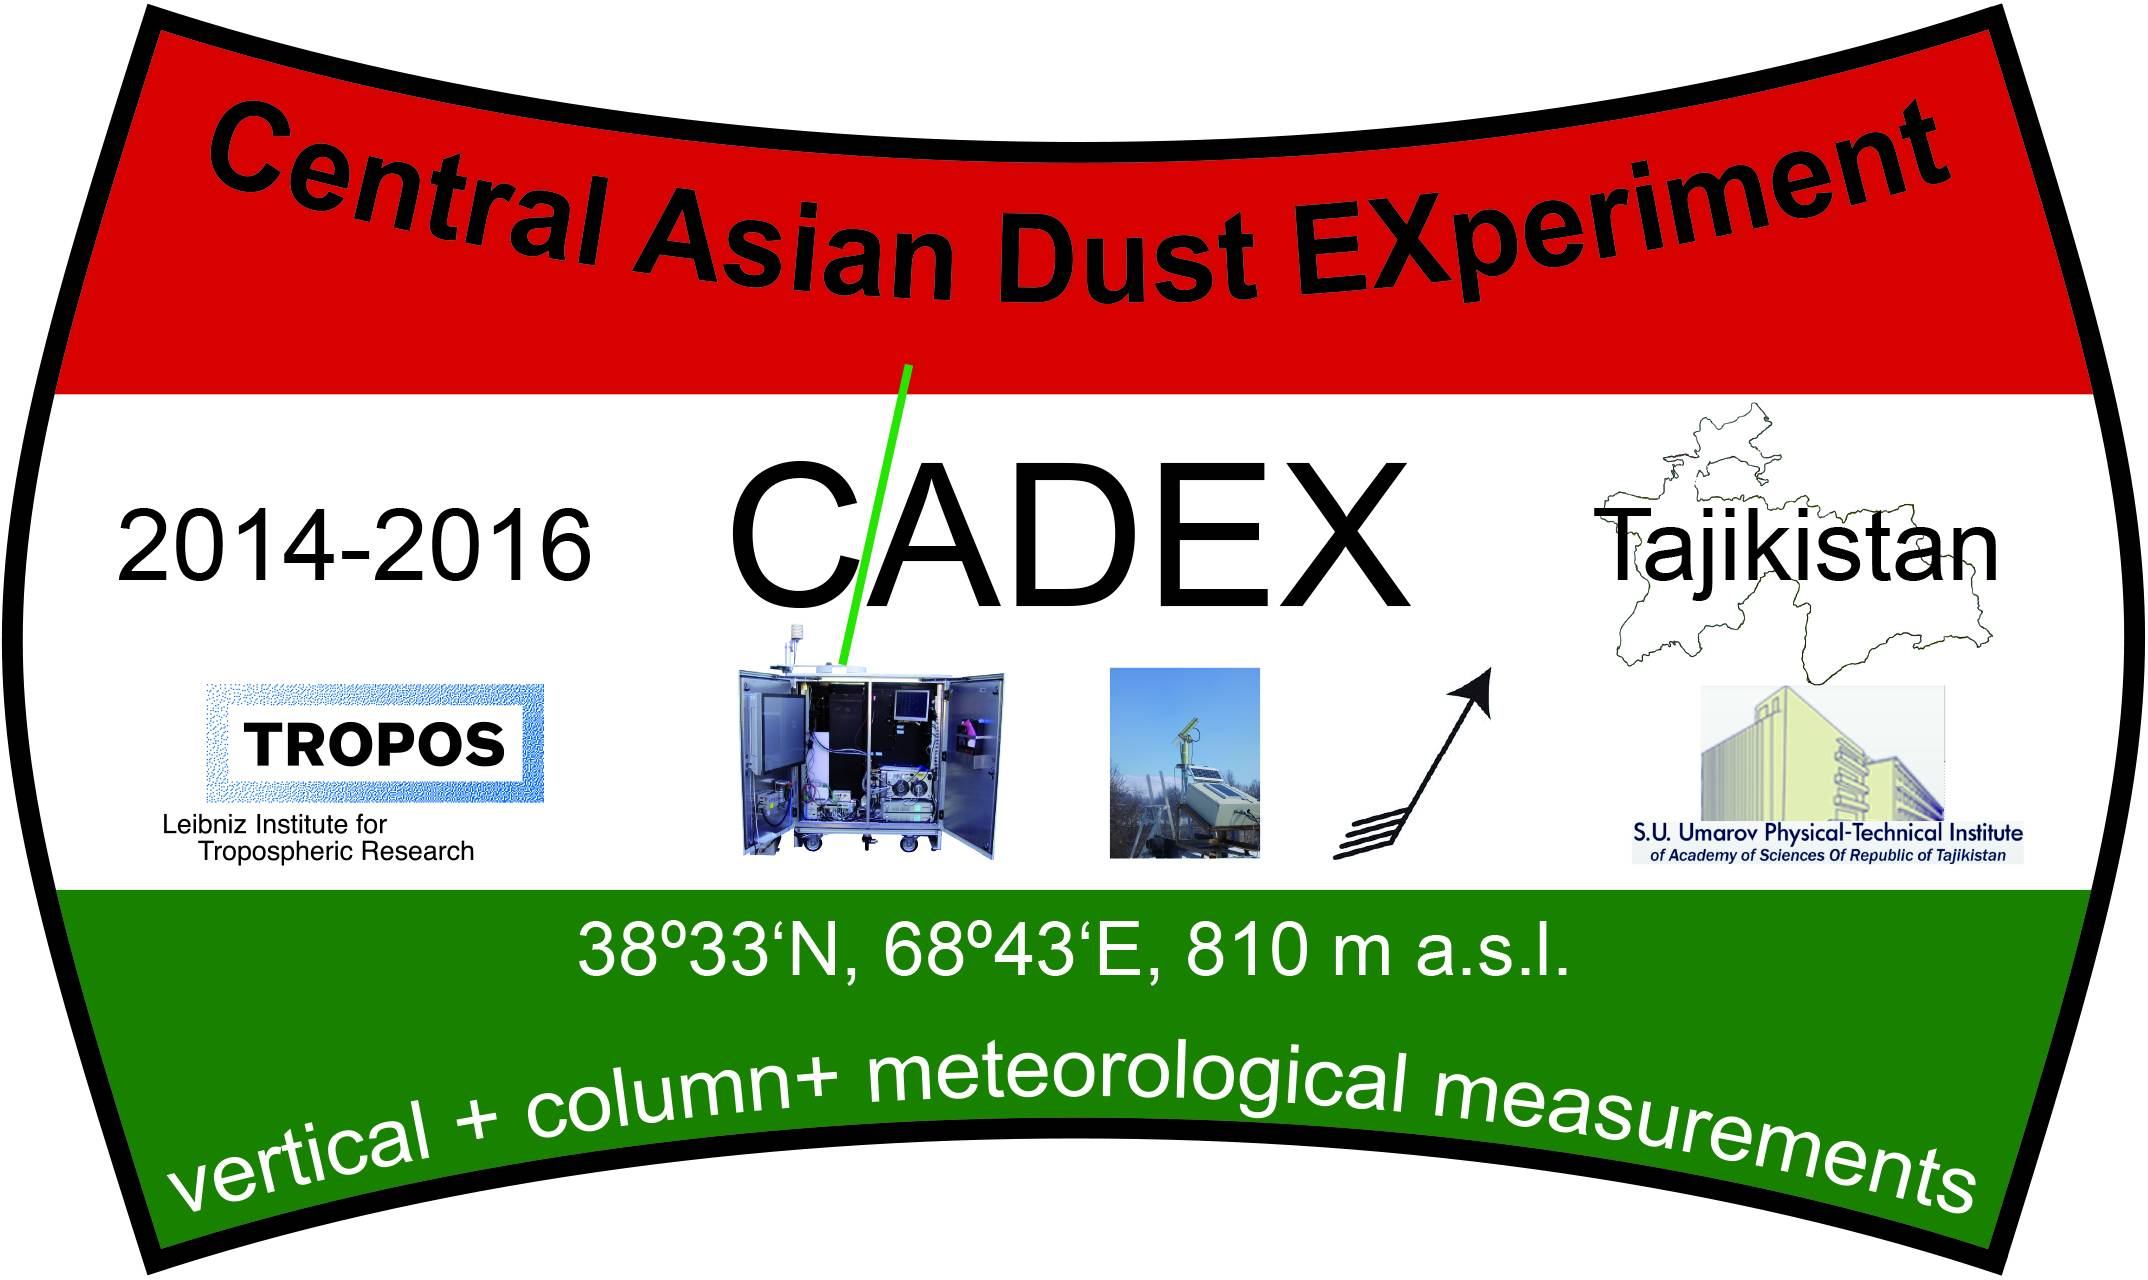 CADEX (Central Asian Dust Experiment)